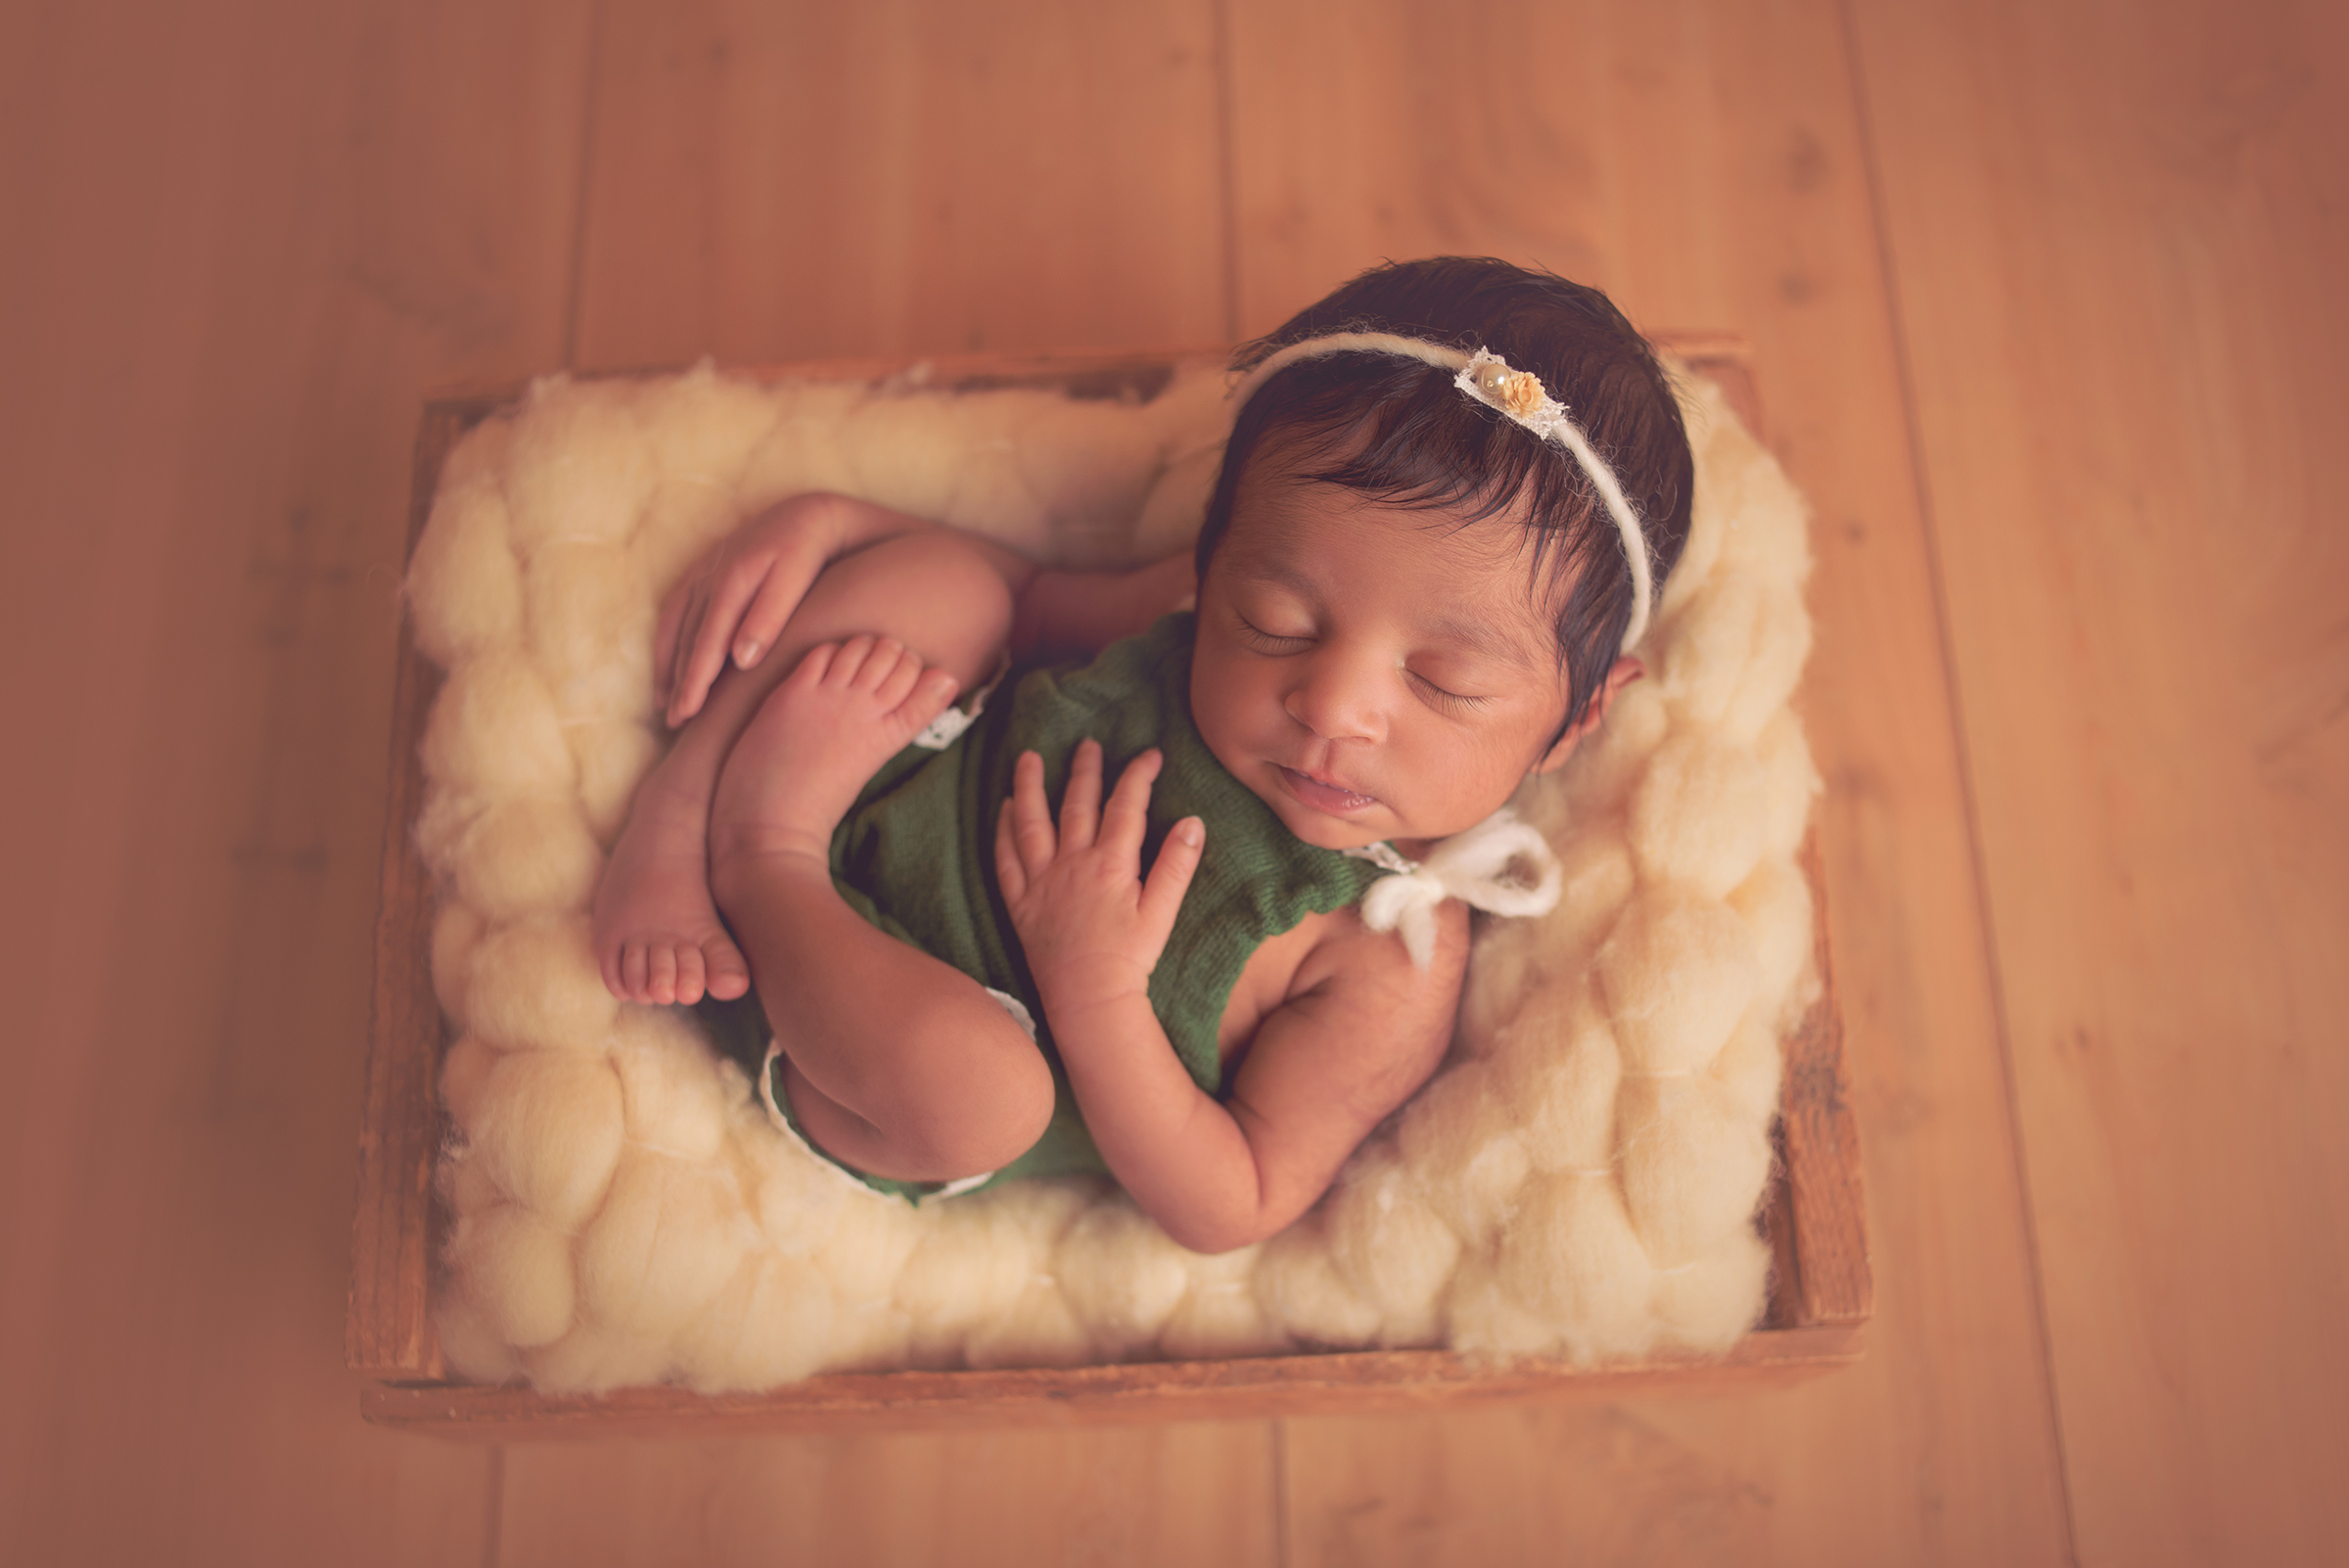 Newborn girl posed in wooden crate for her infant photo session in San Diego, California